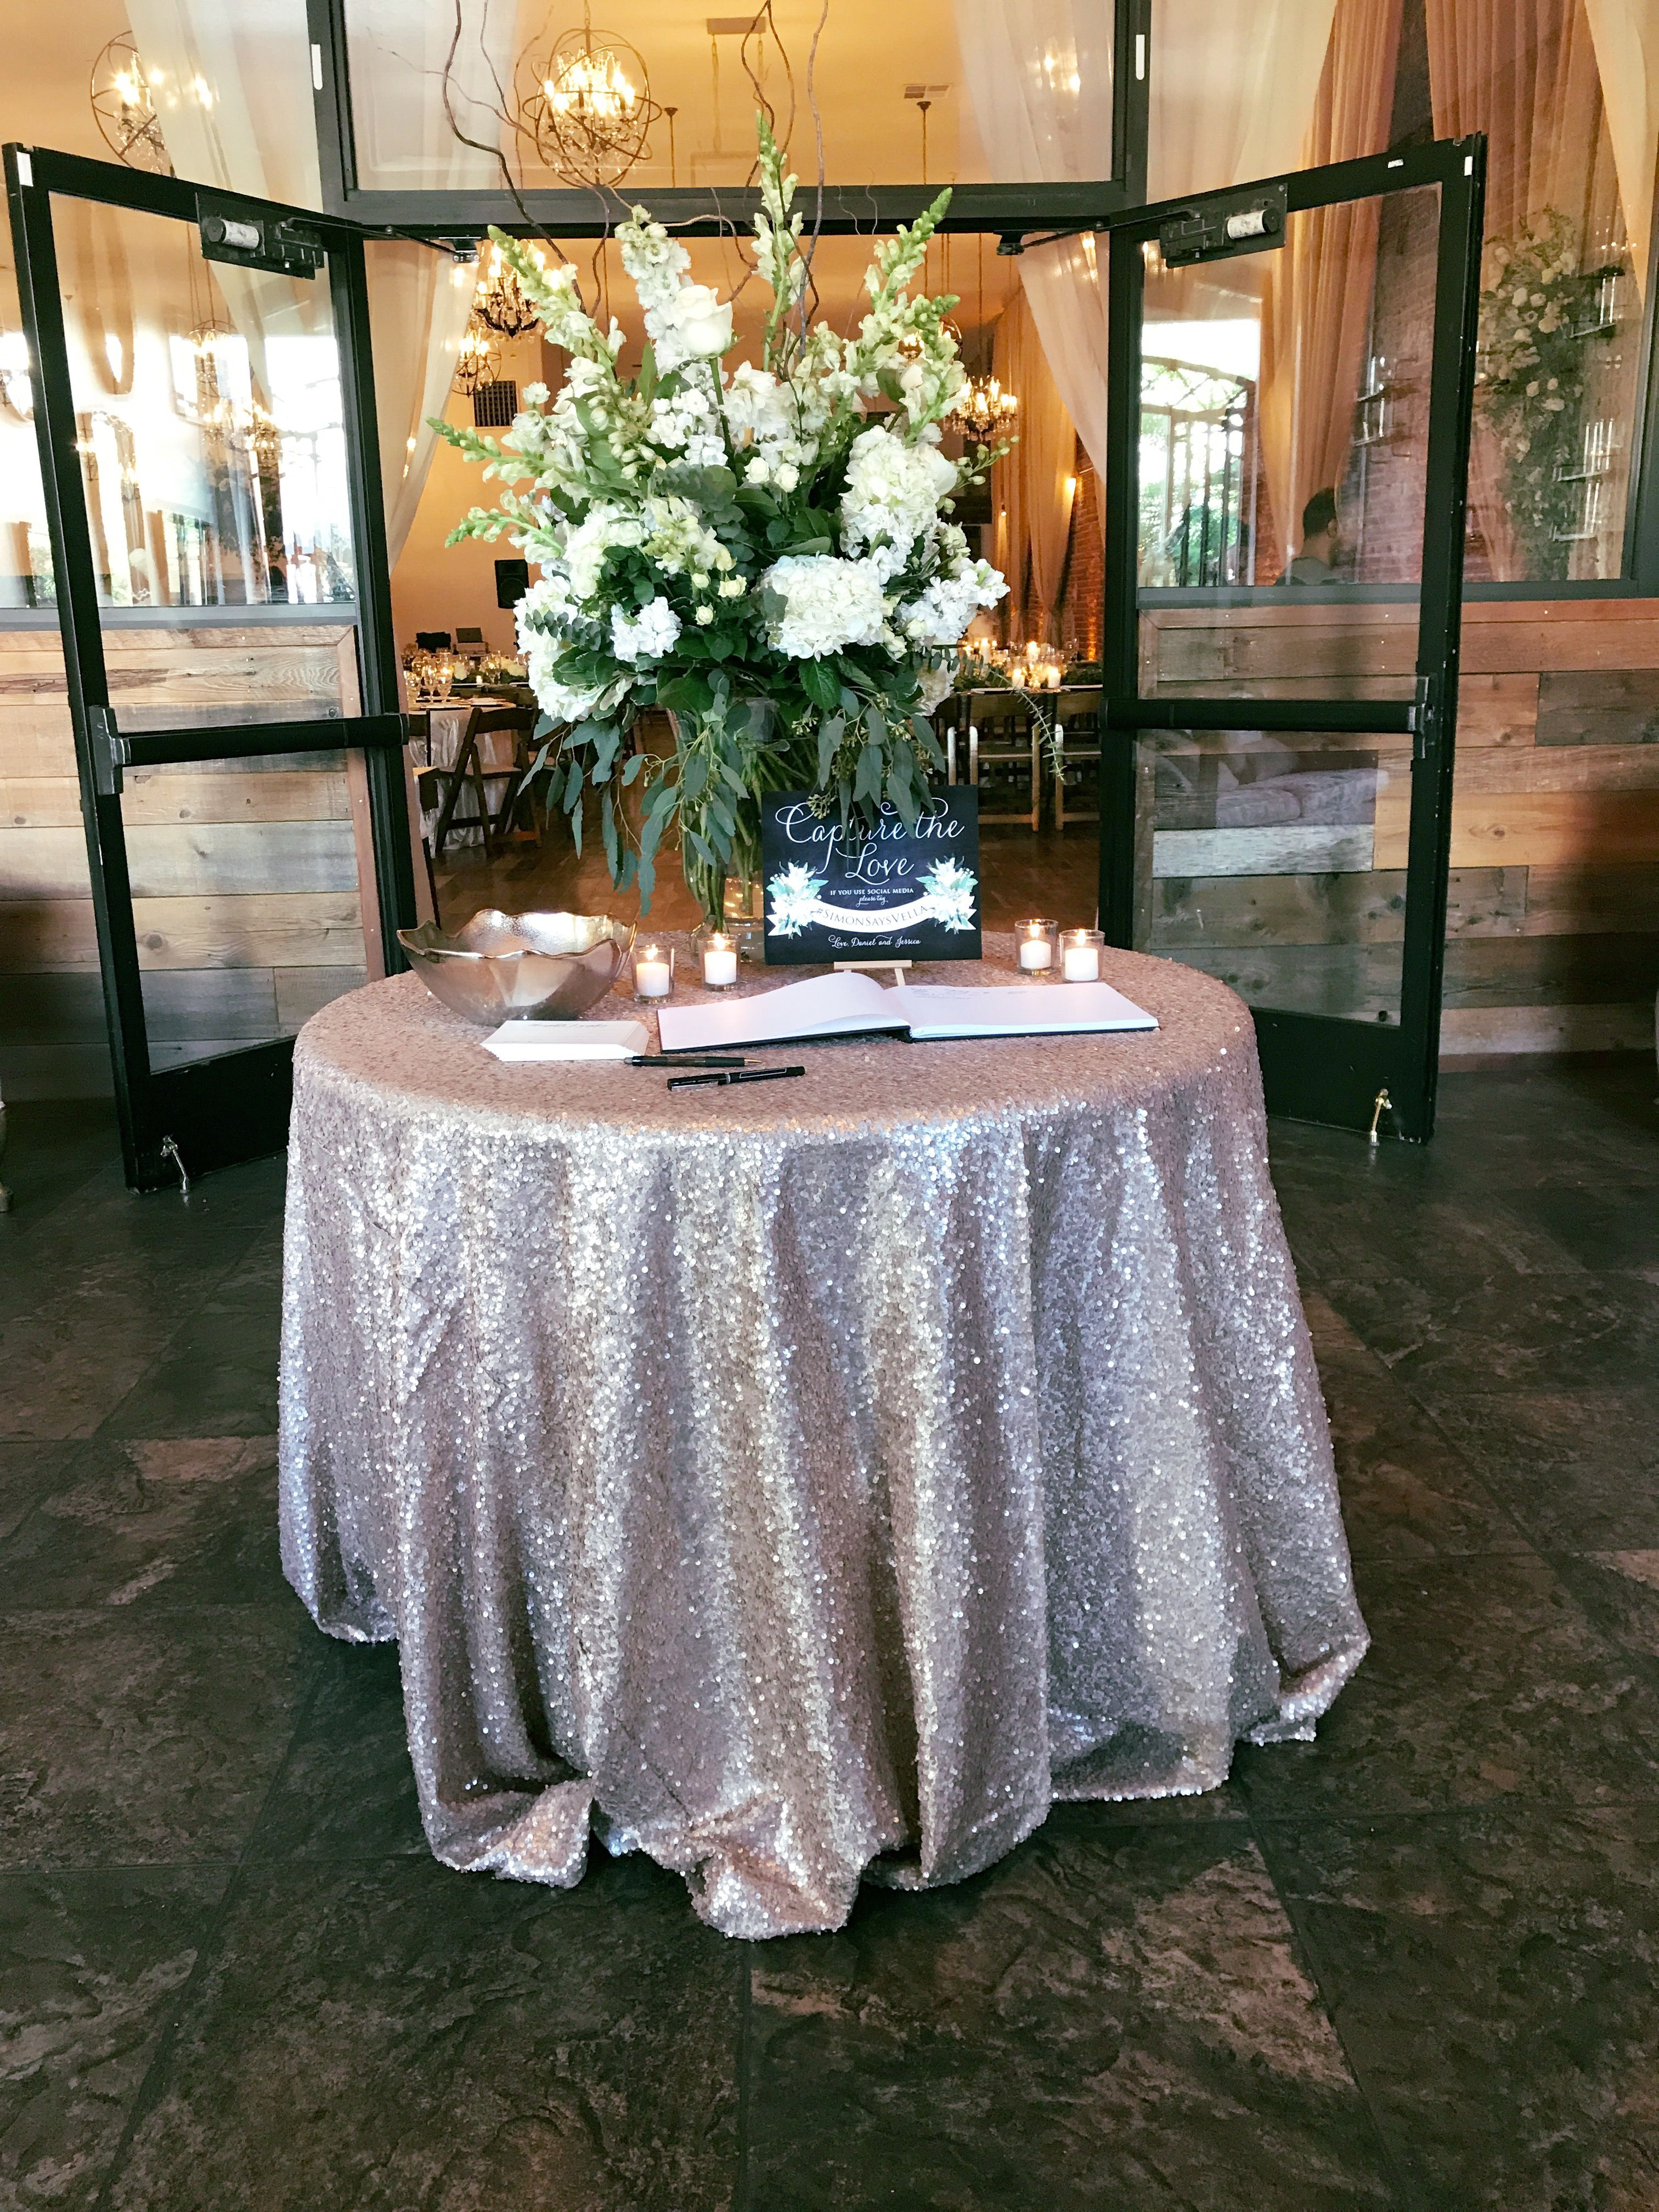 Sign In Table For Wedding Wedding Guest Book Wedding Held At The Century Wedding Guest Book Table Wedding Guest Table Wedding Guest Book Table Decorations